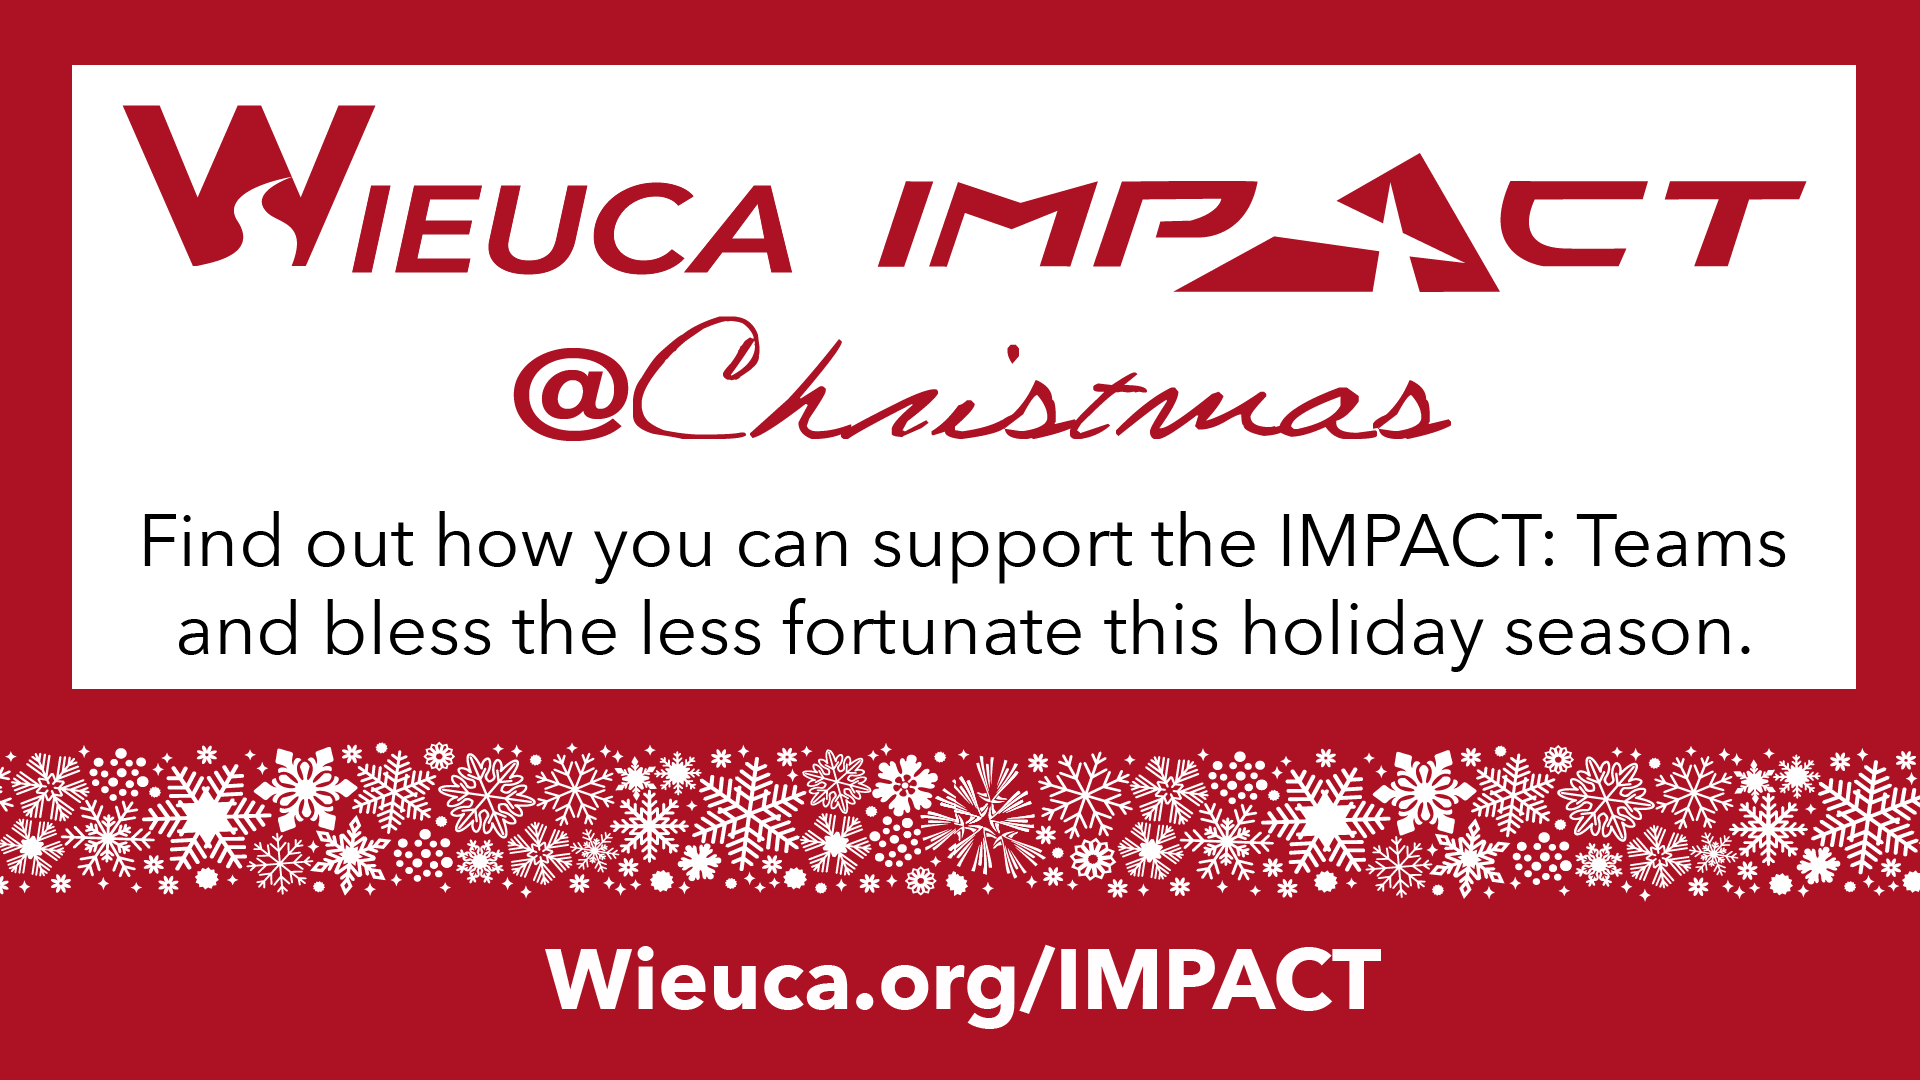 http://www.wieuca.org/uploads/Christmas-Giving(1).png